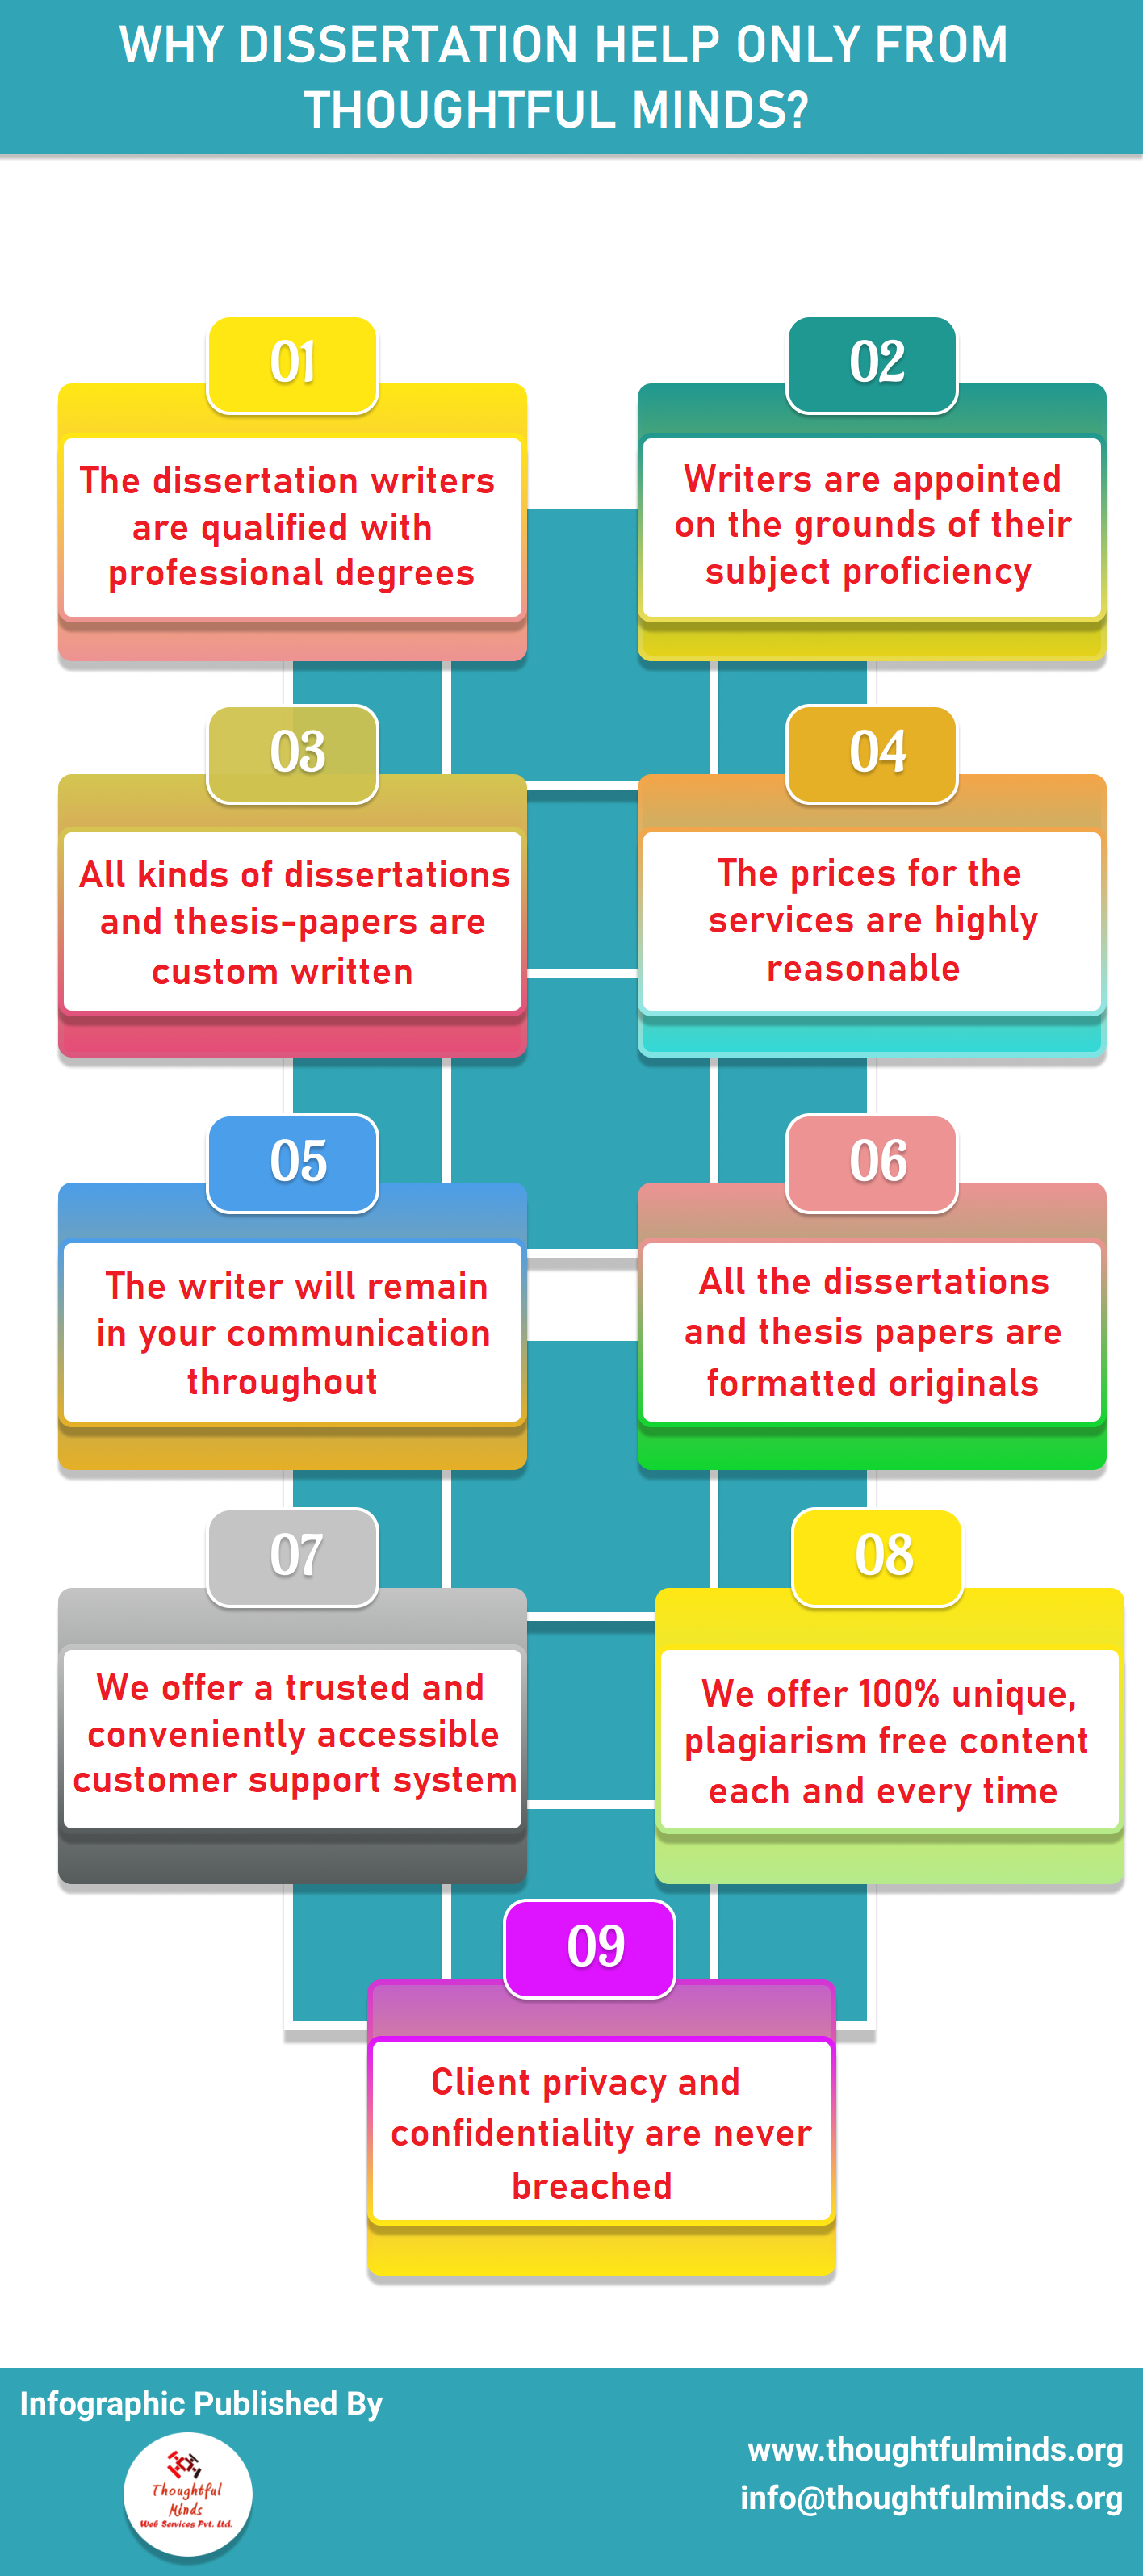 Infographic On Why Dissertation Help only from Thoughtful Minds